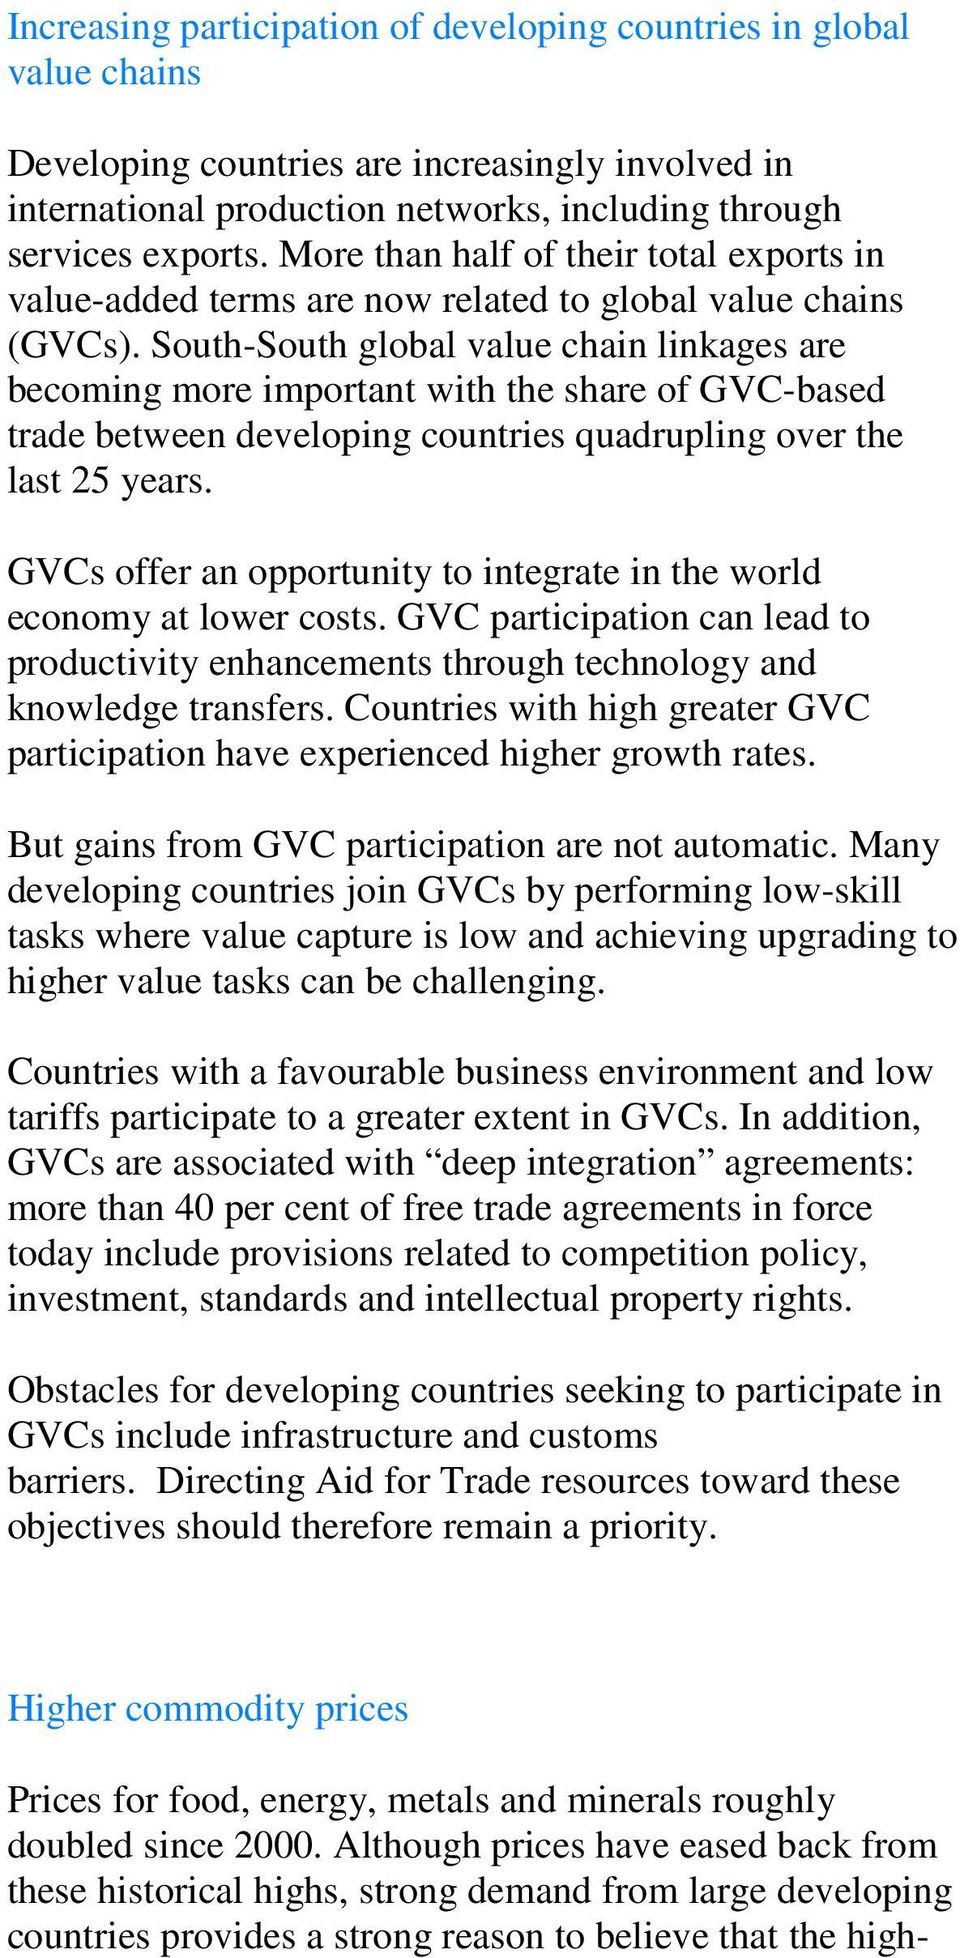 South-South global value chain linkages are becoming more important with the share of GVC-based trade between developing countries quadrupling over the last 25 years.